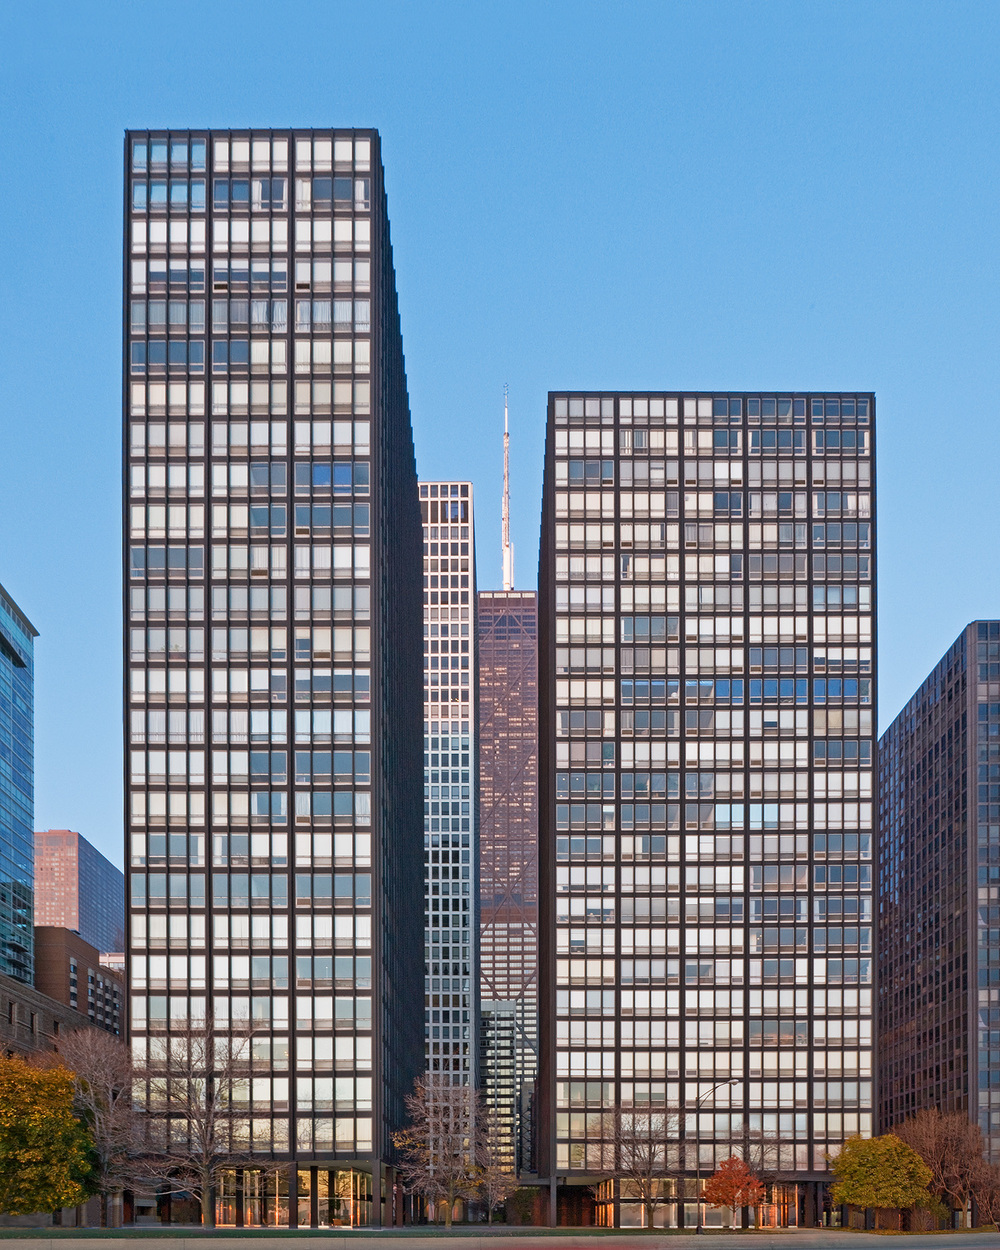 860-880 N. Lake Shore Drive / Chicago IL / Mies van der Rohe